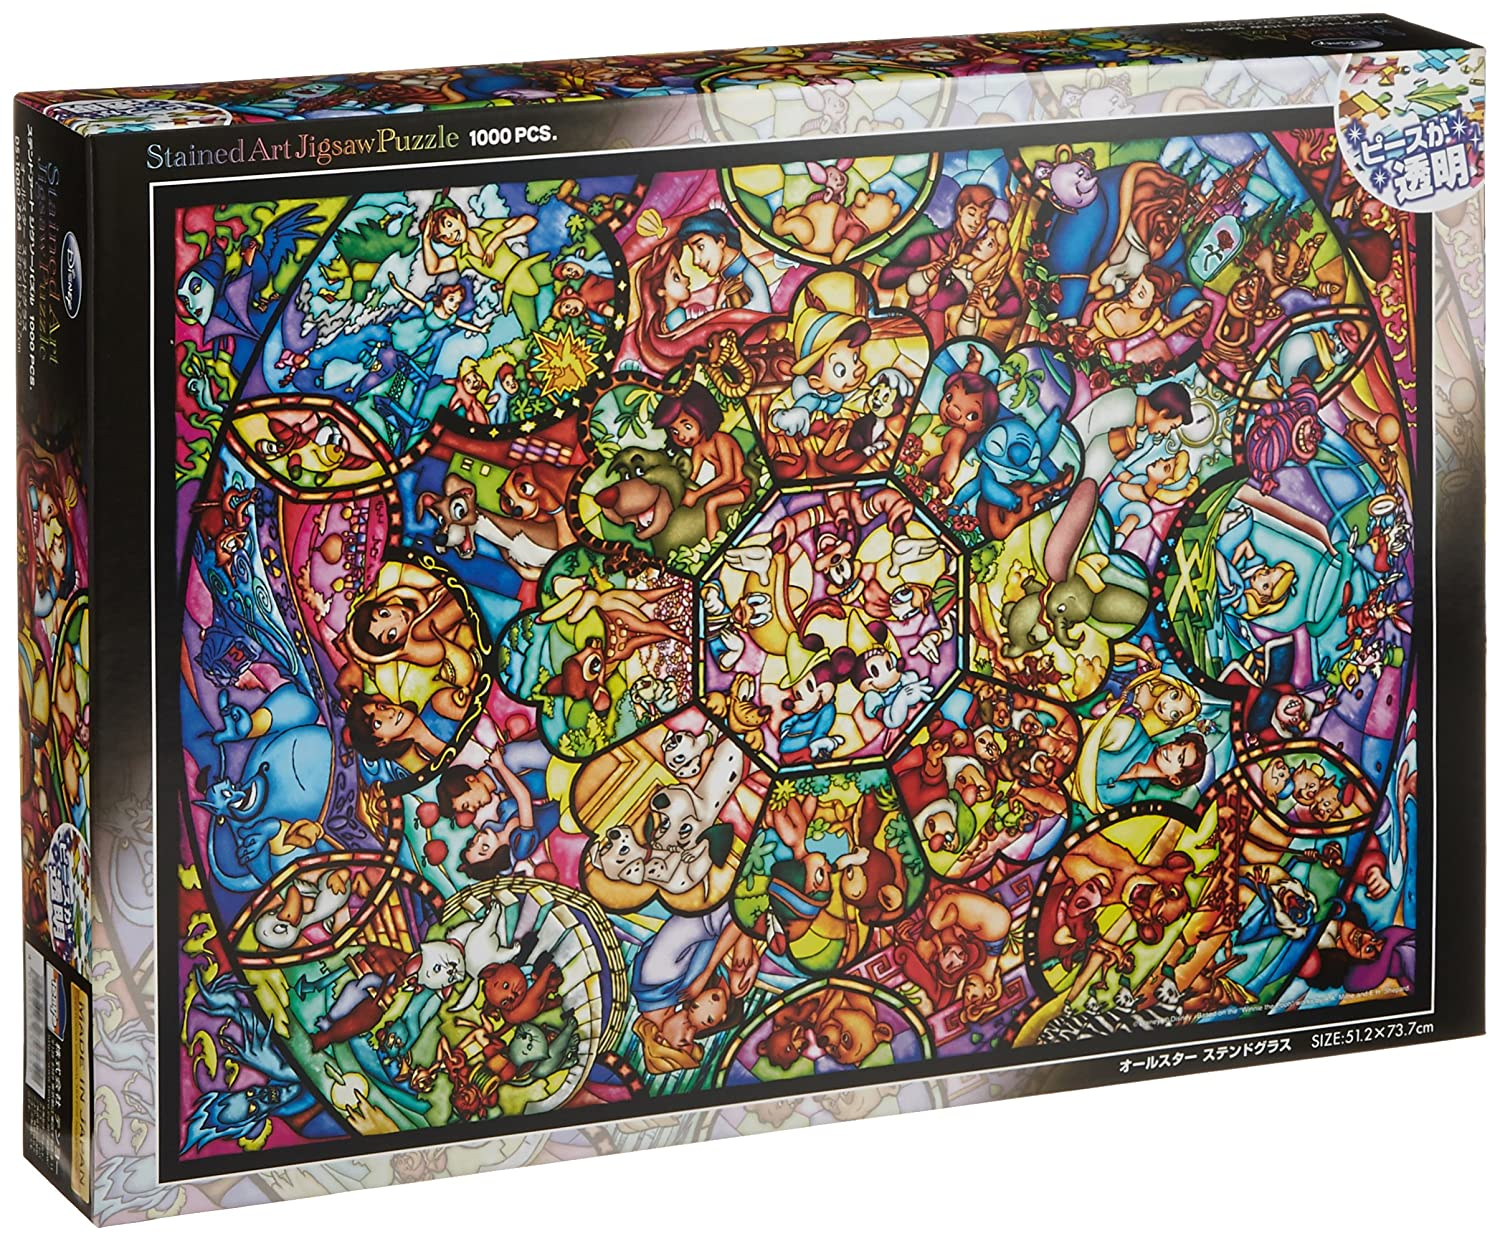 Disney Stained Glass Puzzle.Buy Disney Stained Art Jigsaw Puzzle 1000p All Stars